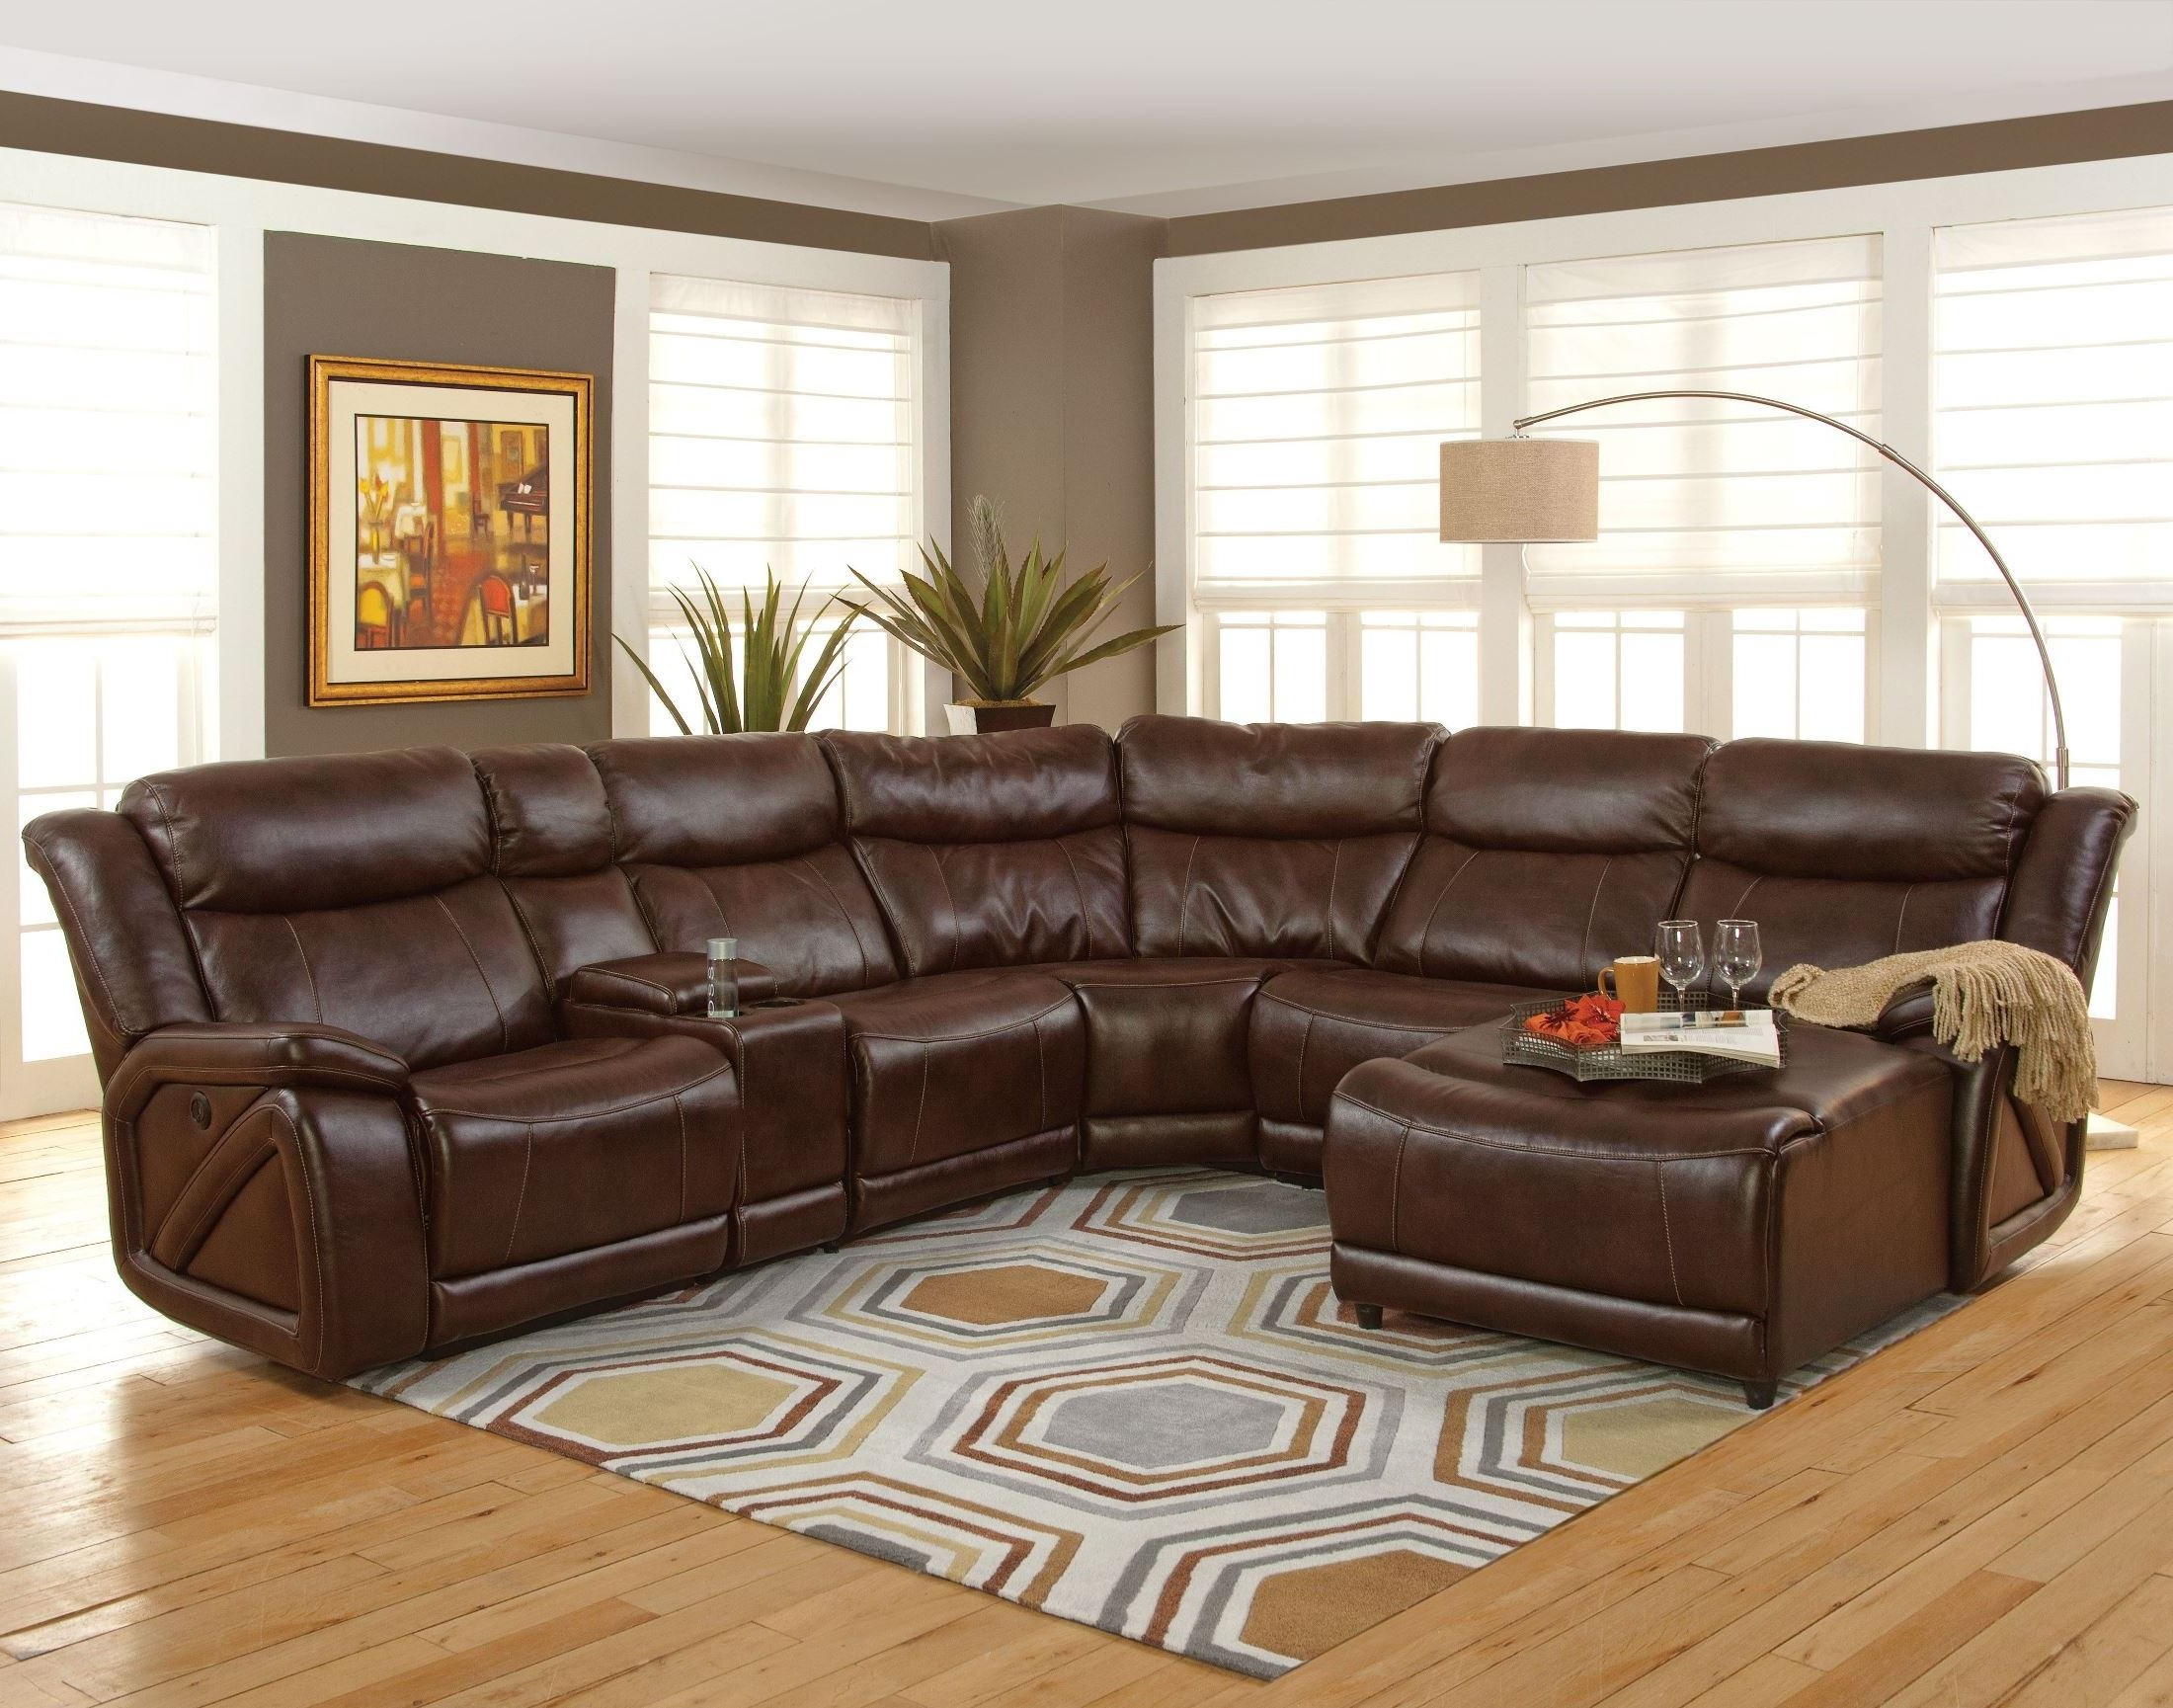 Turdur 2 Piece Sectionals With Laf Loveseat Pertaining To Recent Park Place Premier Brown Laf Sectional From New Classics (20 225 17L (View 15 of 20)